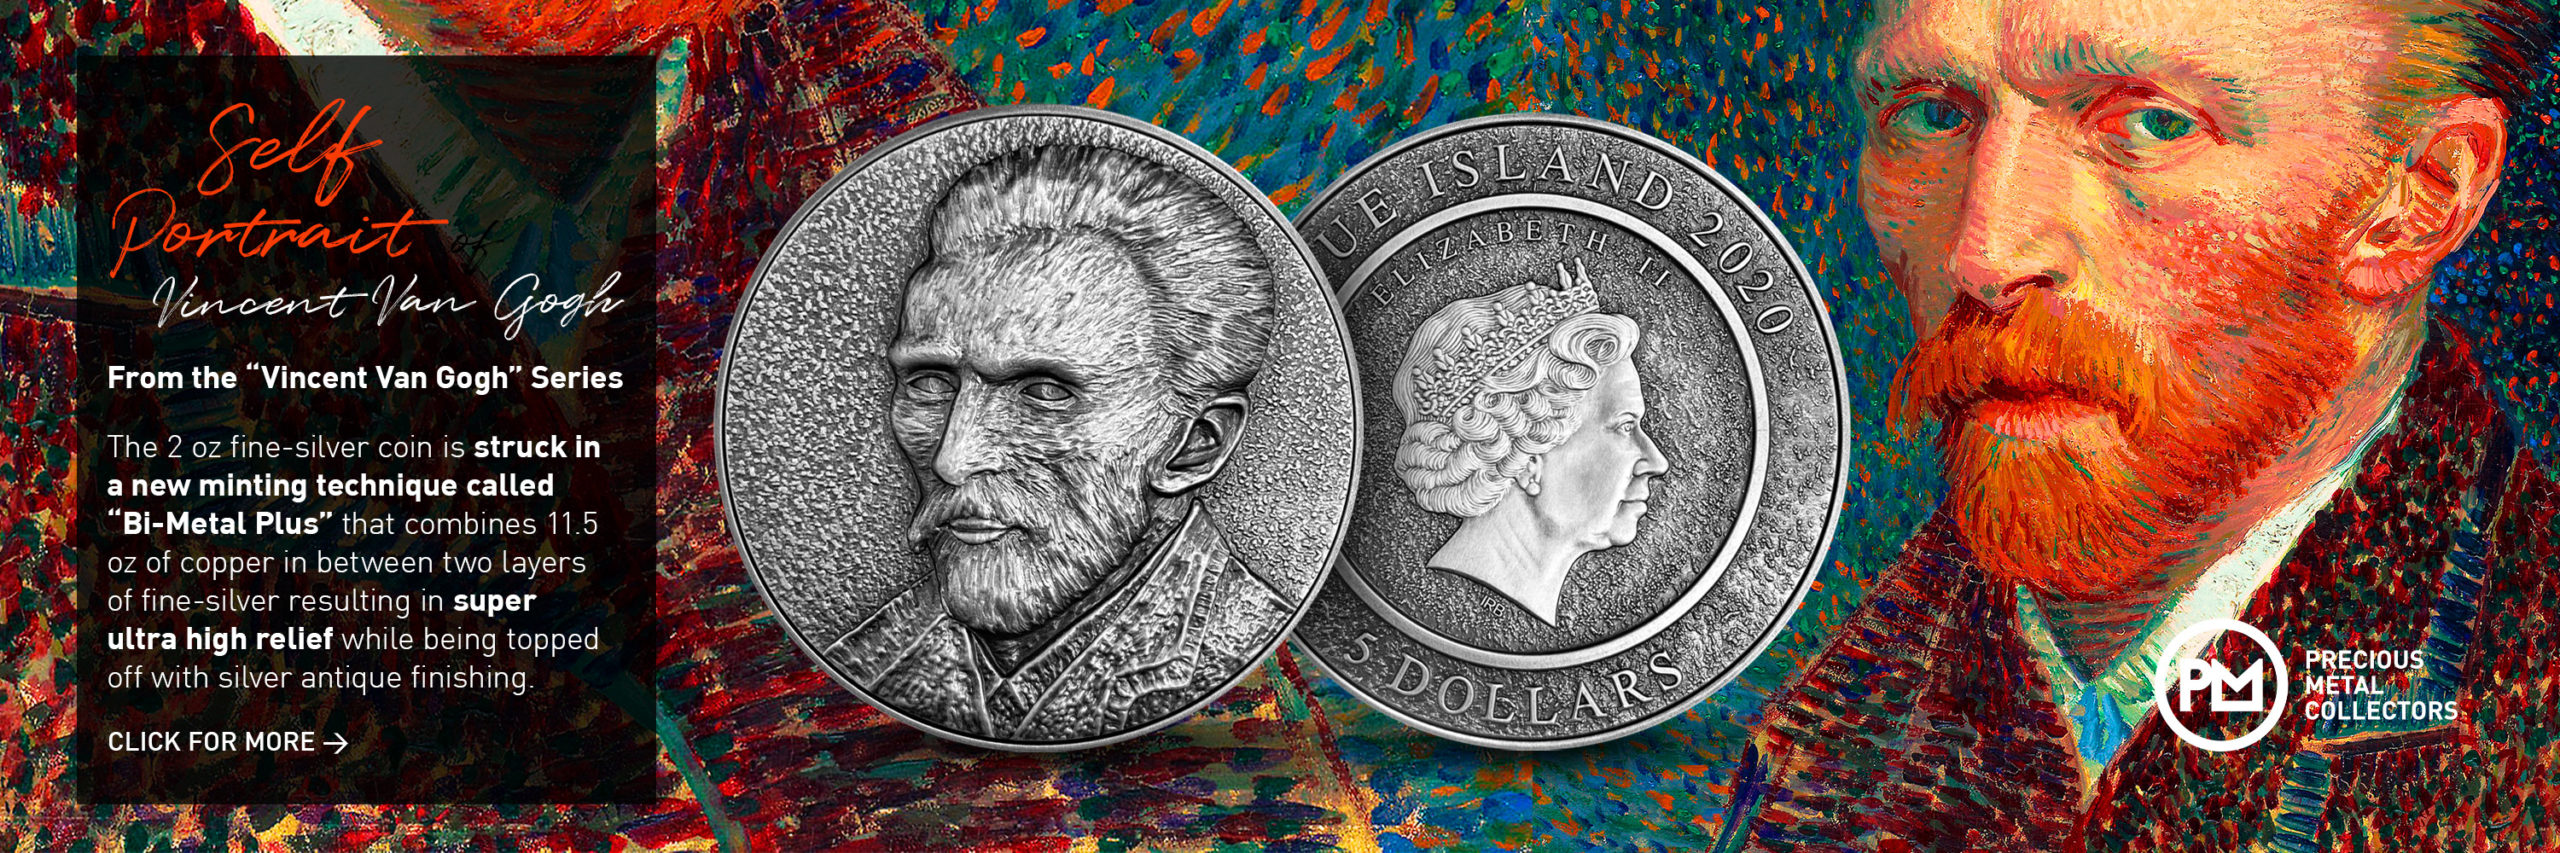 Self Portrait of Vincent Van Gogh 2 oz Silver Coin